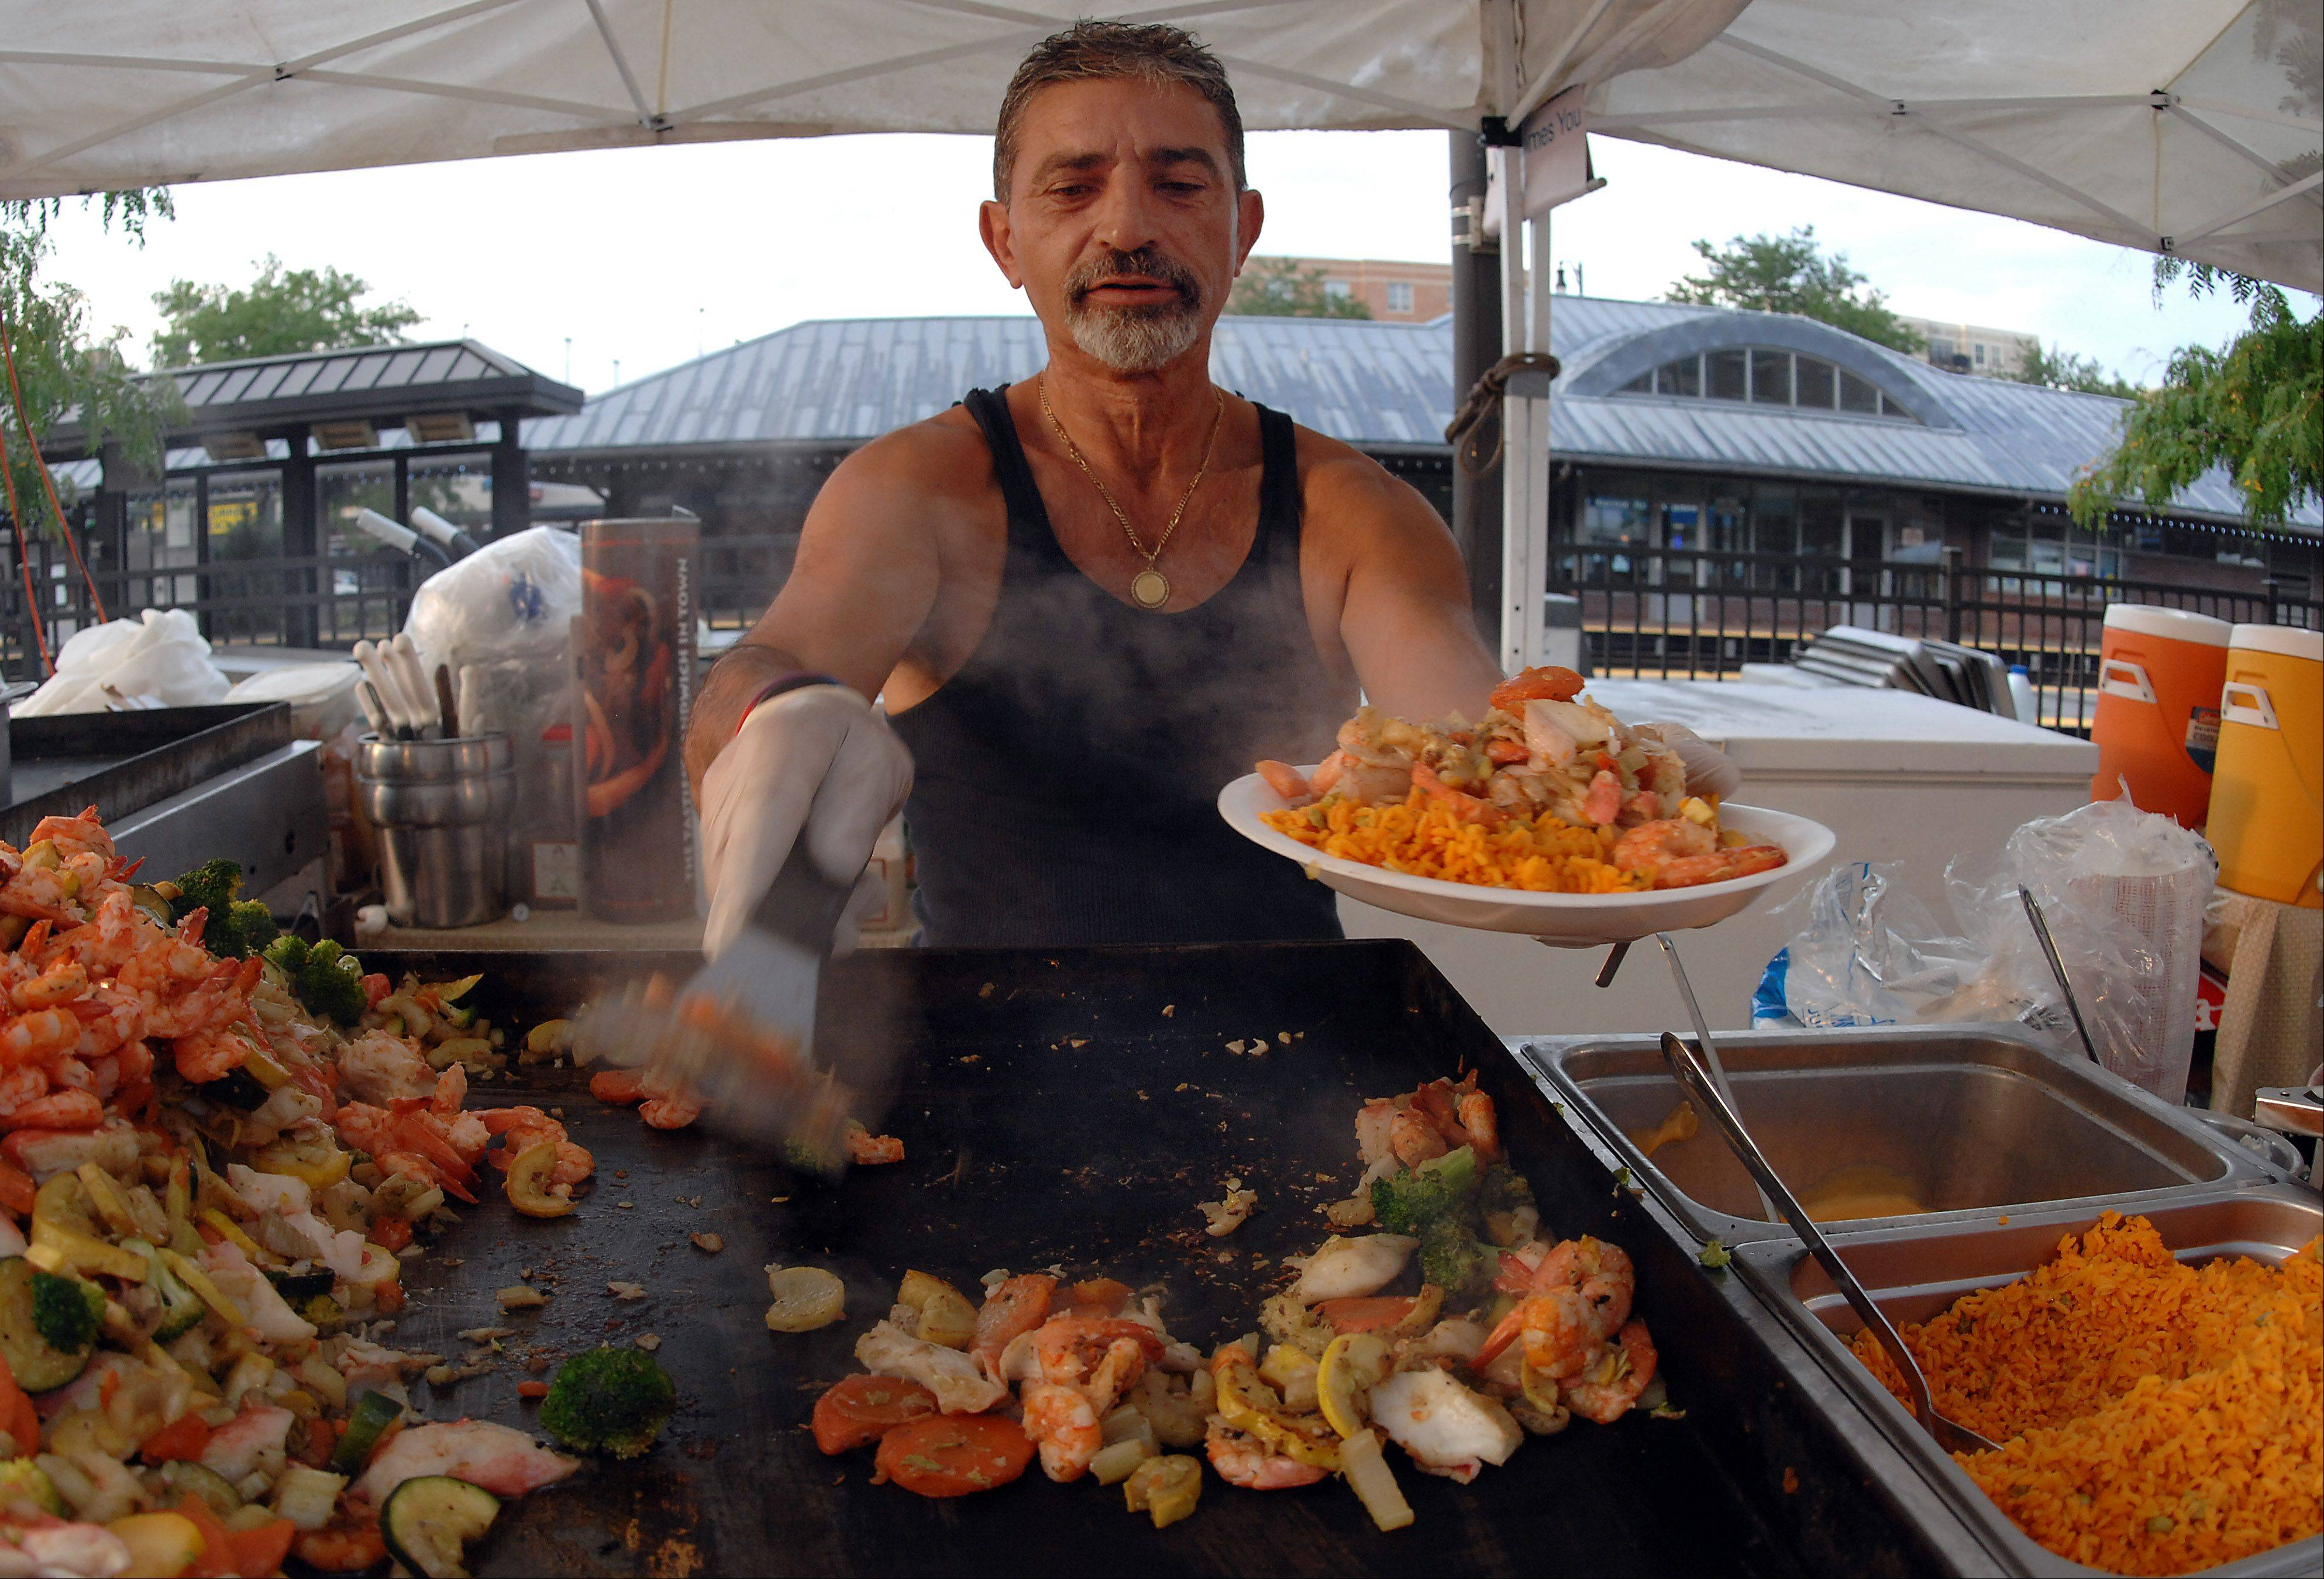 Telly Likoubis serves up his famous seafood combo platter at the 2012 Summer Fling.